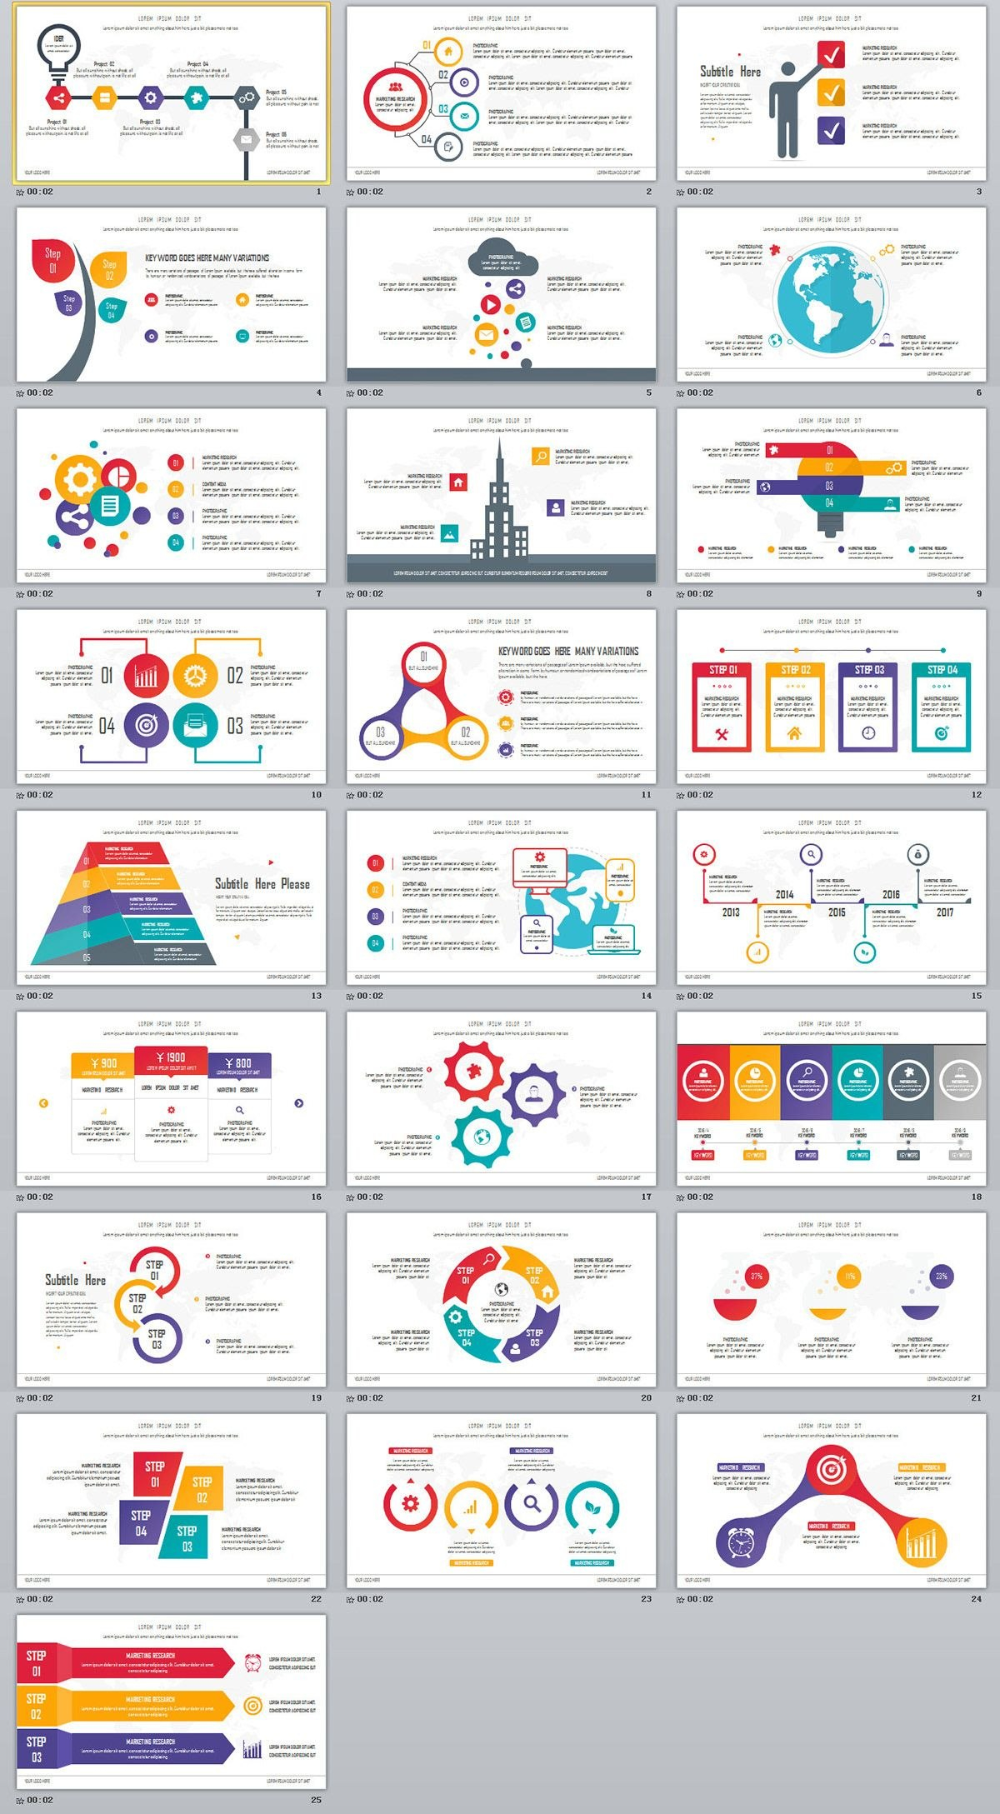 Pindoaa On Favorite Infographic Powerpoint Business With Powerpoint Calend Infographic Powerpoint Powerpoint Design Templates Professional Powerpoint Templates